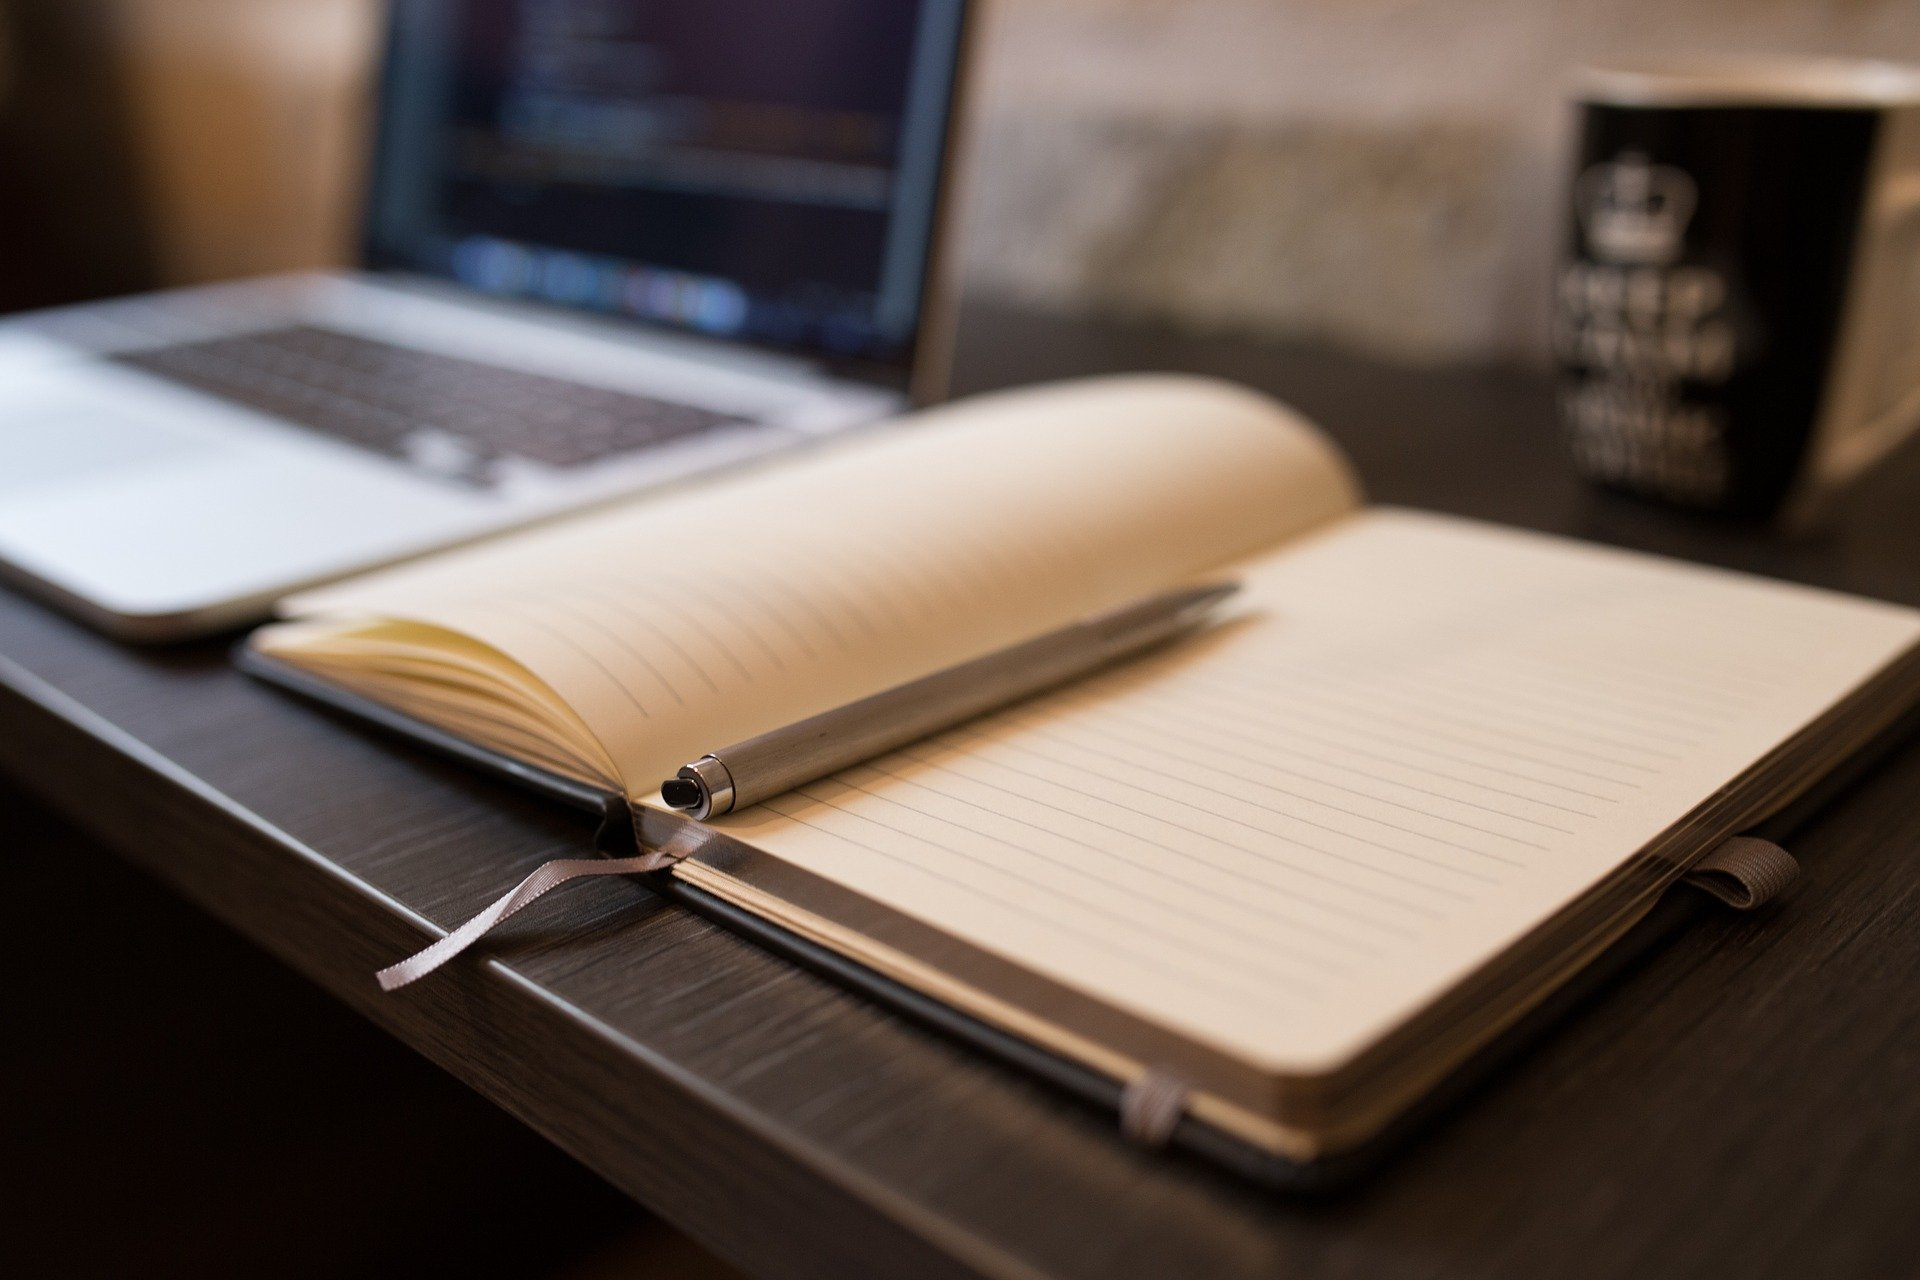 Notepad and book